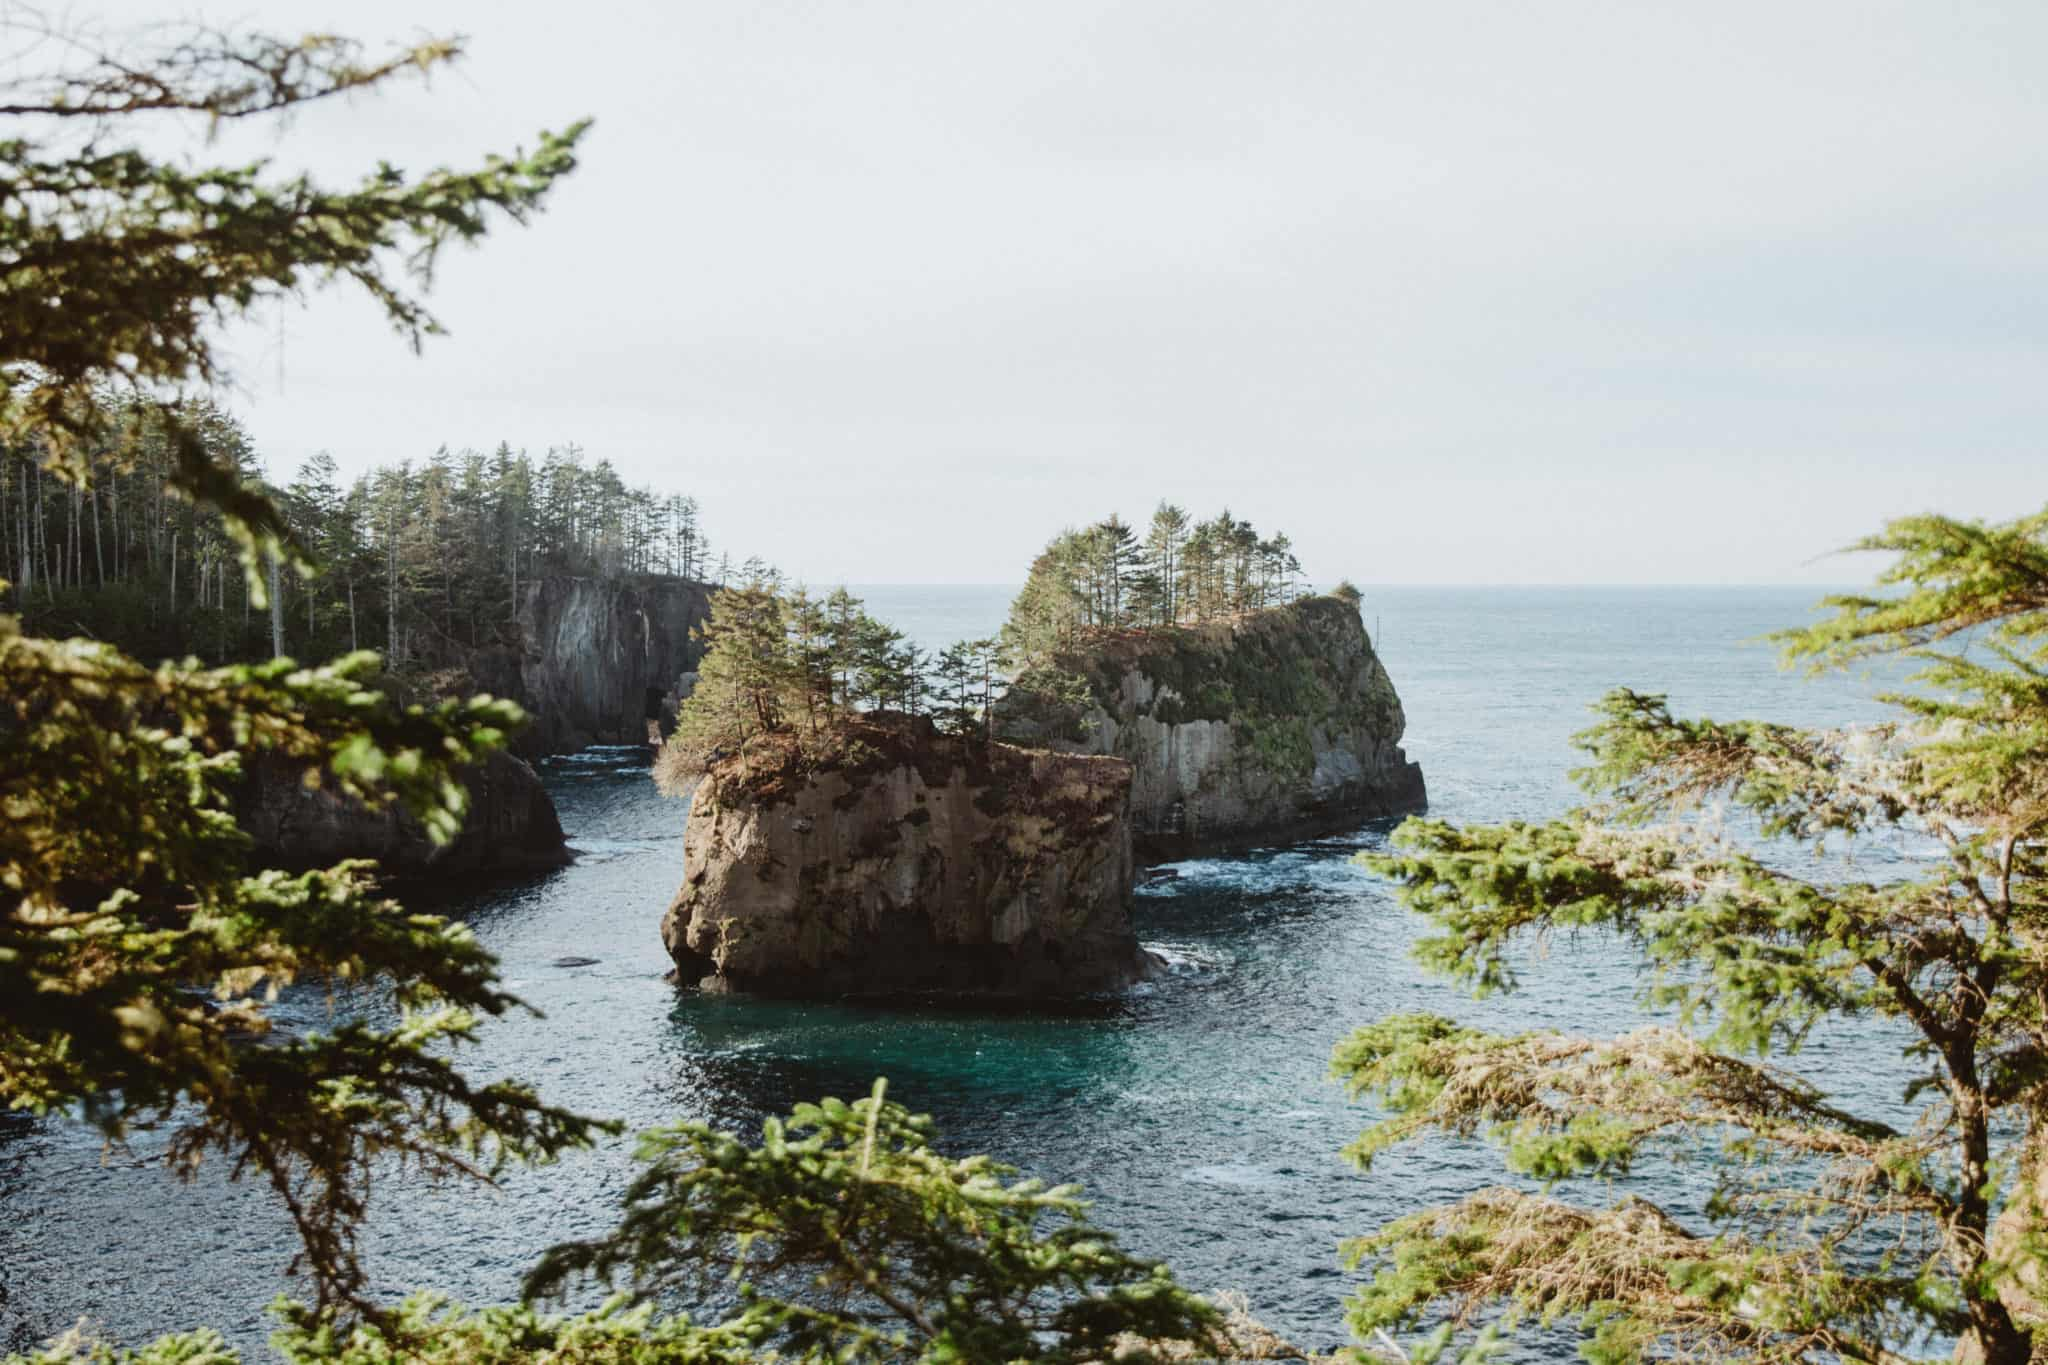 Cape Flattery Trail And Exactly What To Expect At This Pacific Northwest Gem